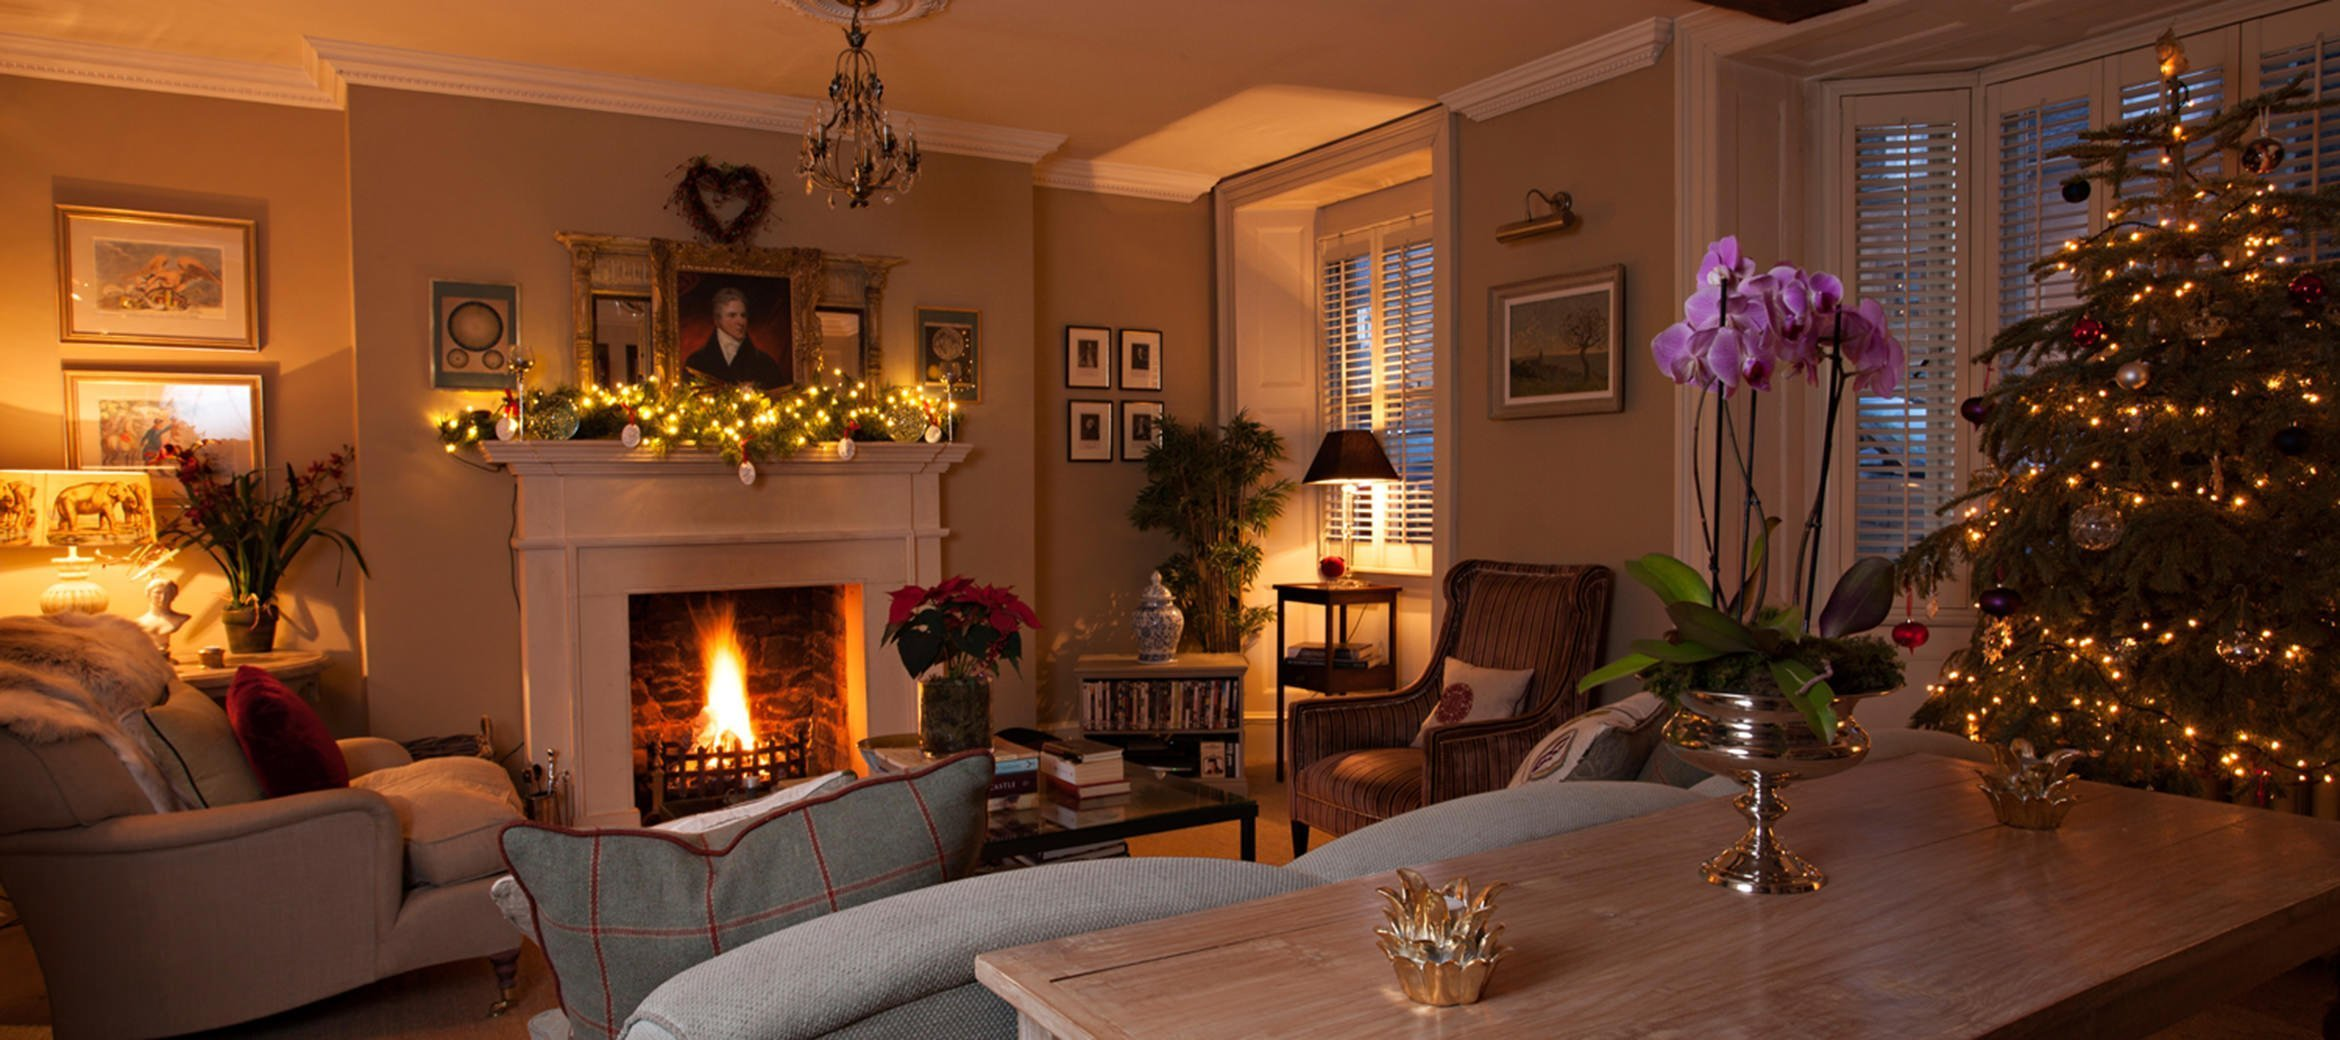 Christmas Decorated Rooms Singer House Chipping Campden Luxury Cotswold Rentals